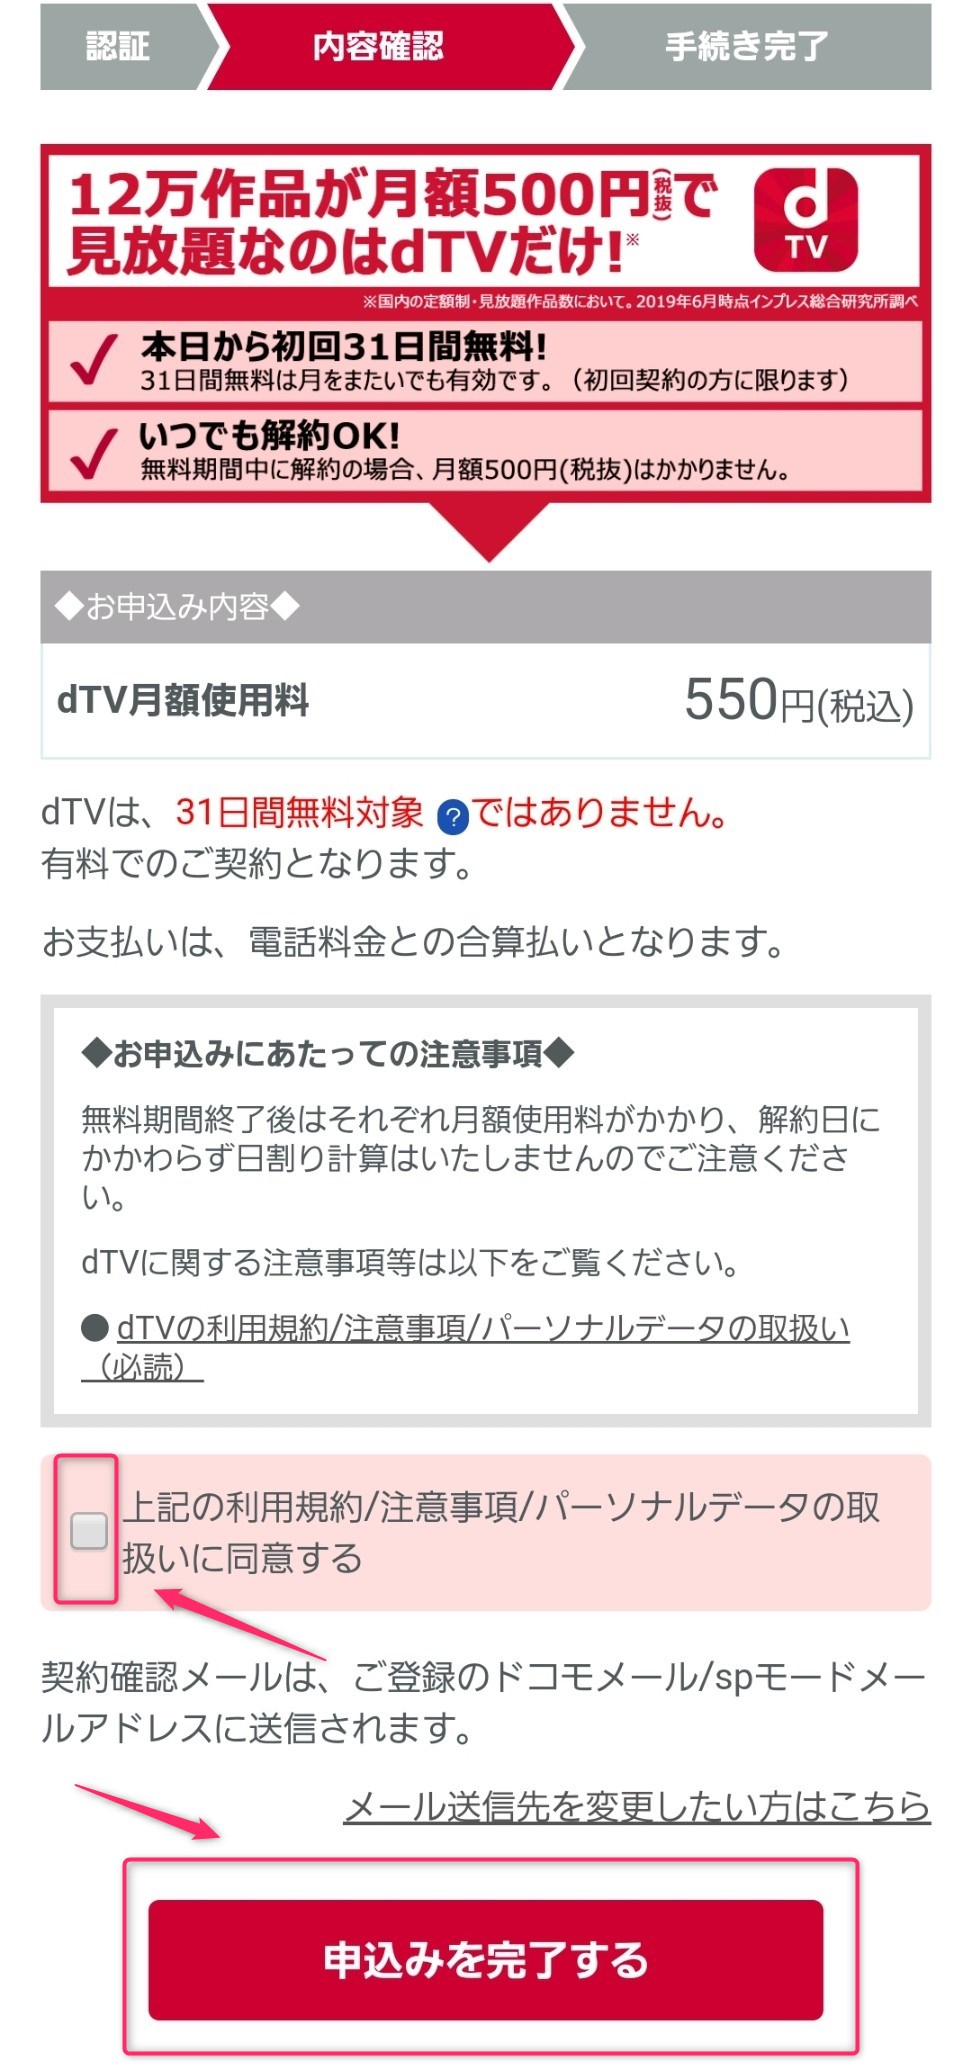 dtv申し込み